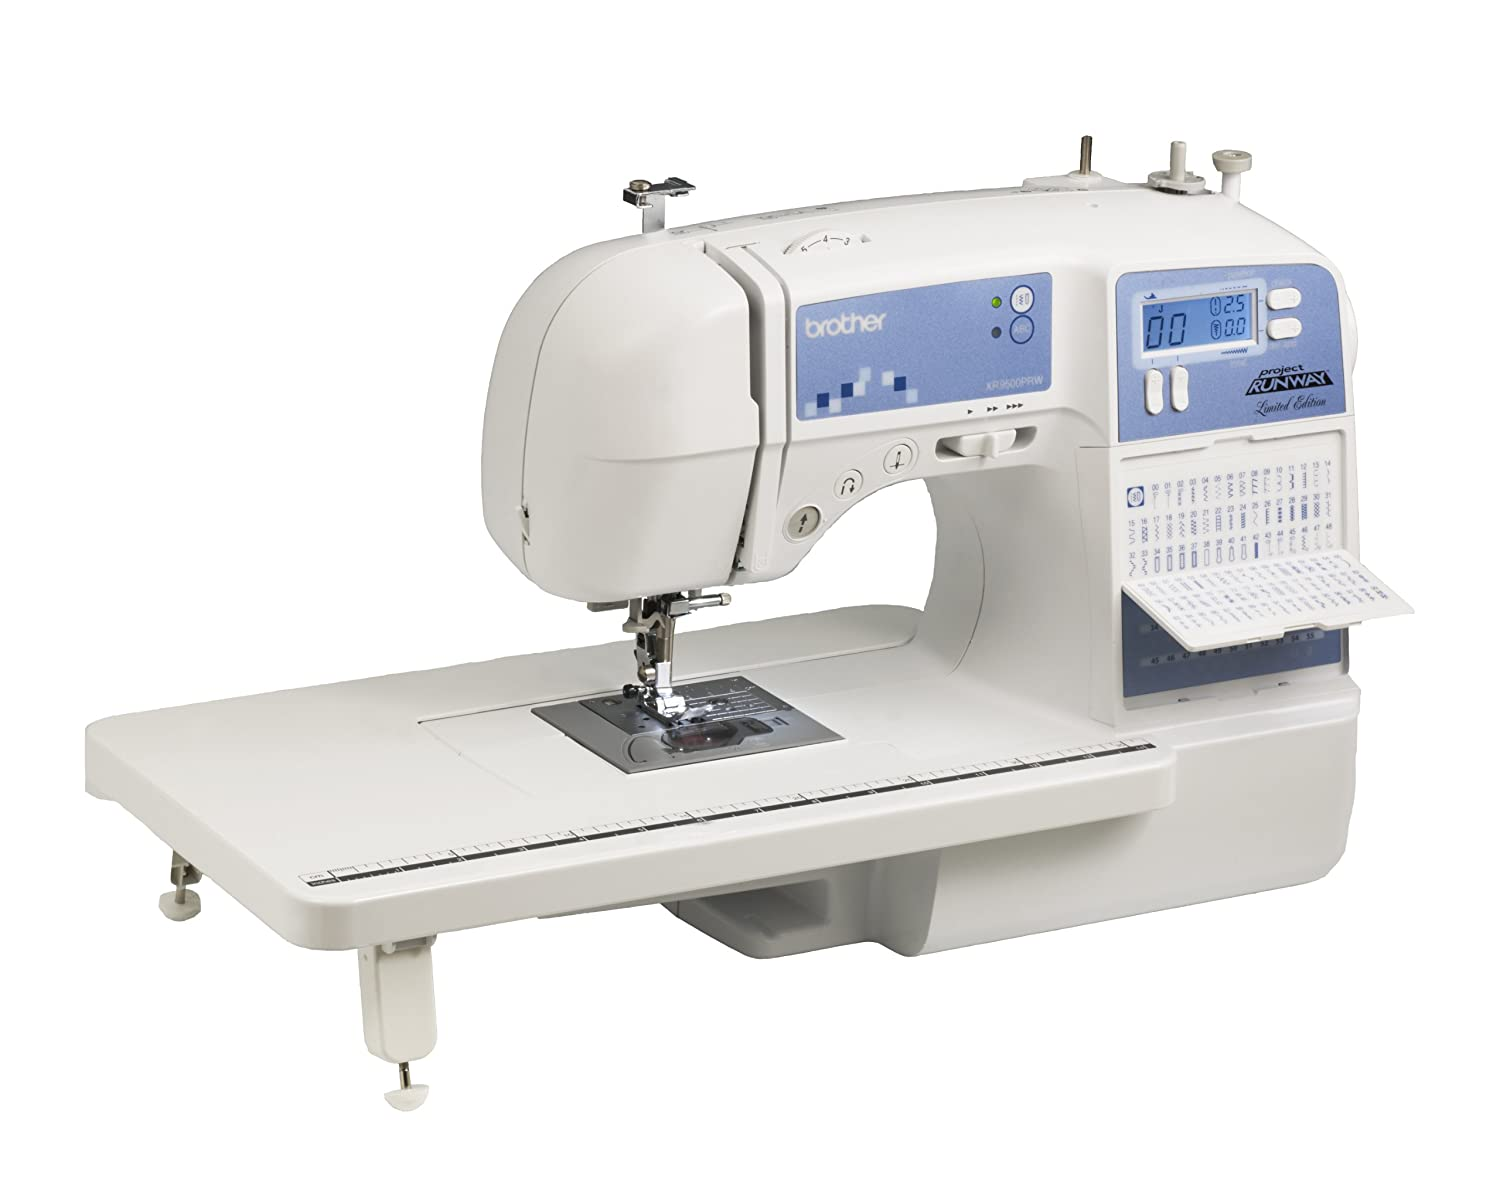 modern machines quilt sewing singer quilter machine joann quilting